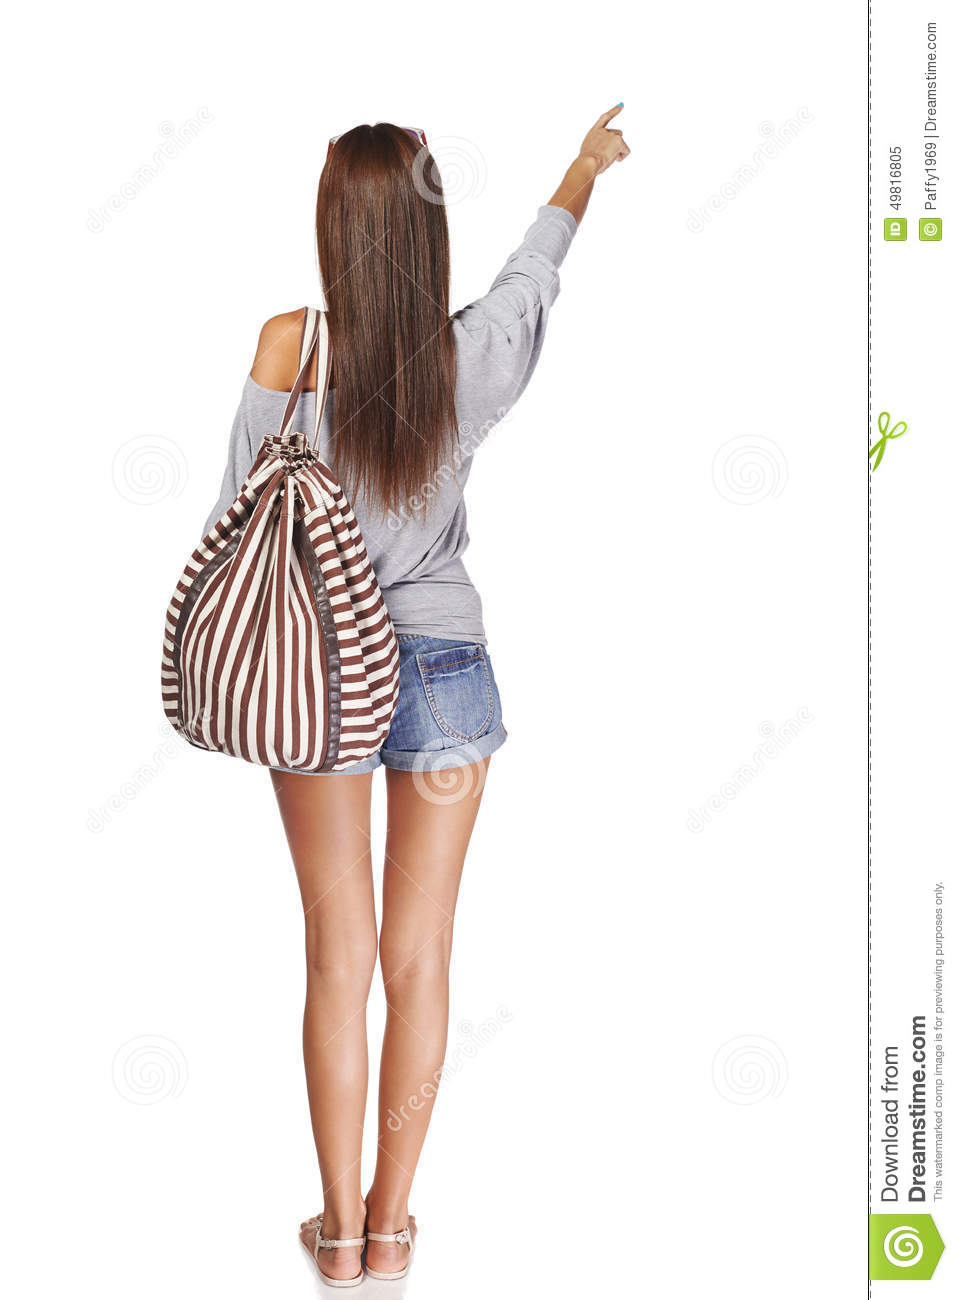 ac415e7c6c Back view Full length of young slim tanned female in denim shorts with backpack  pointing at blank copy space